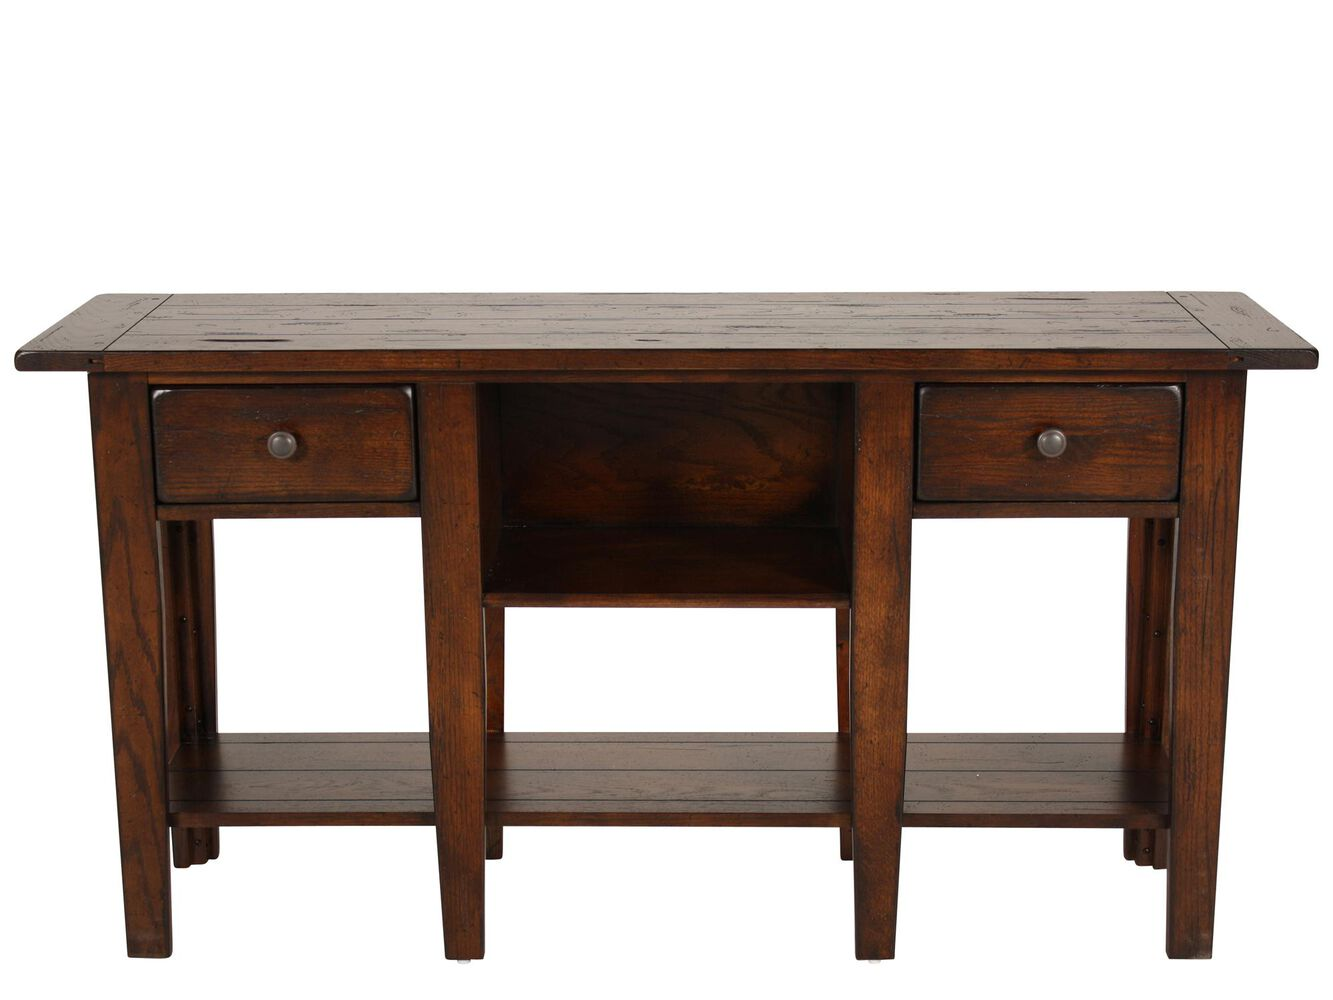 Broyhill Attic Heirlooms Rustic Sofa Table | Mathis Brothers Furniture